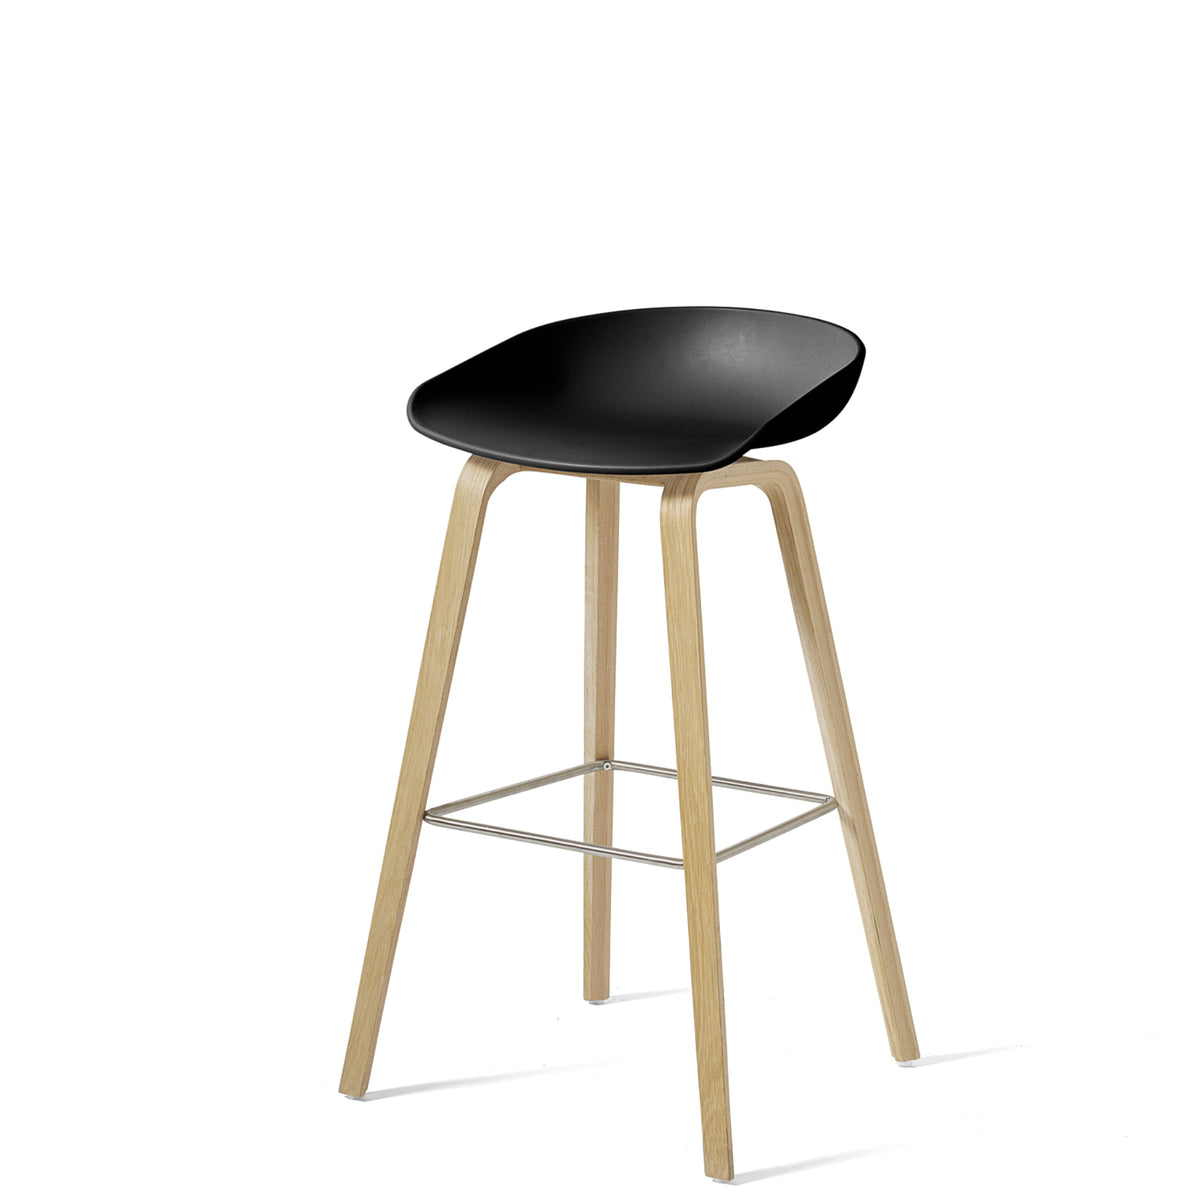 HAY About A Stool AAS32 850mm Black Matt Lacquered Oak Base